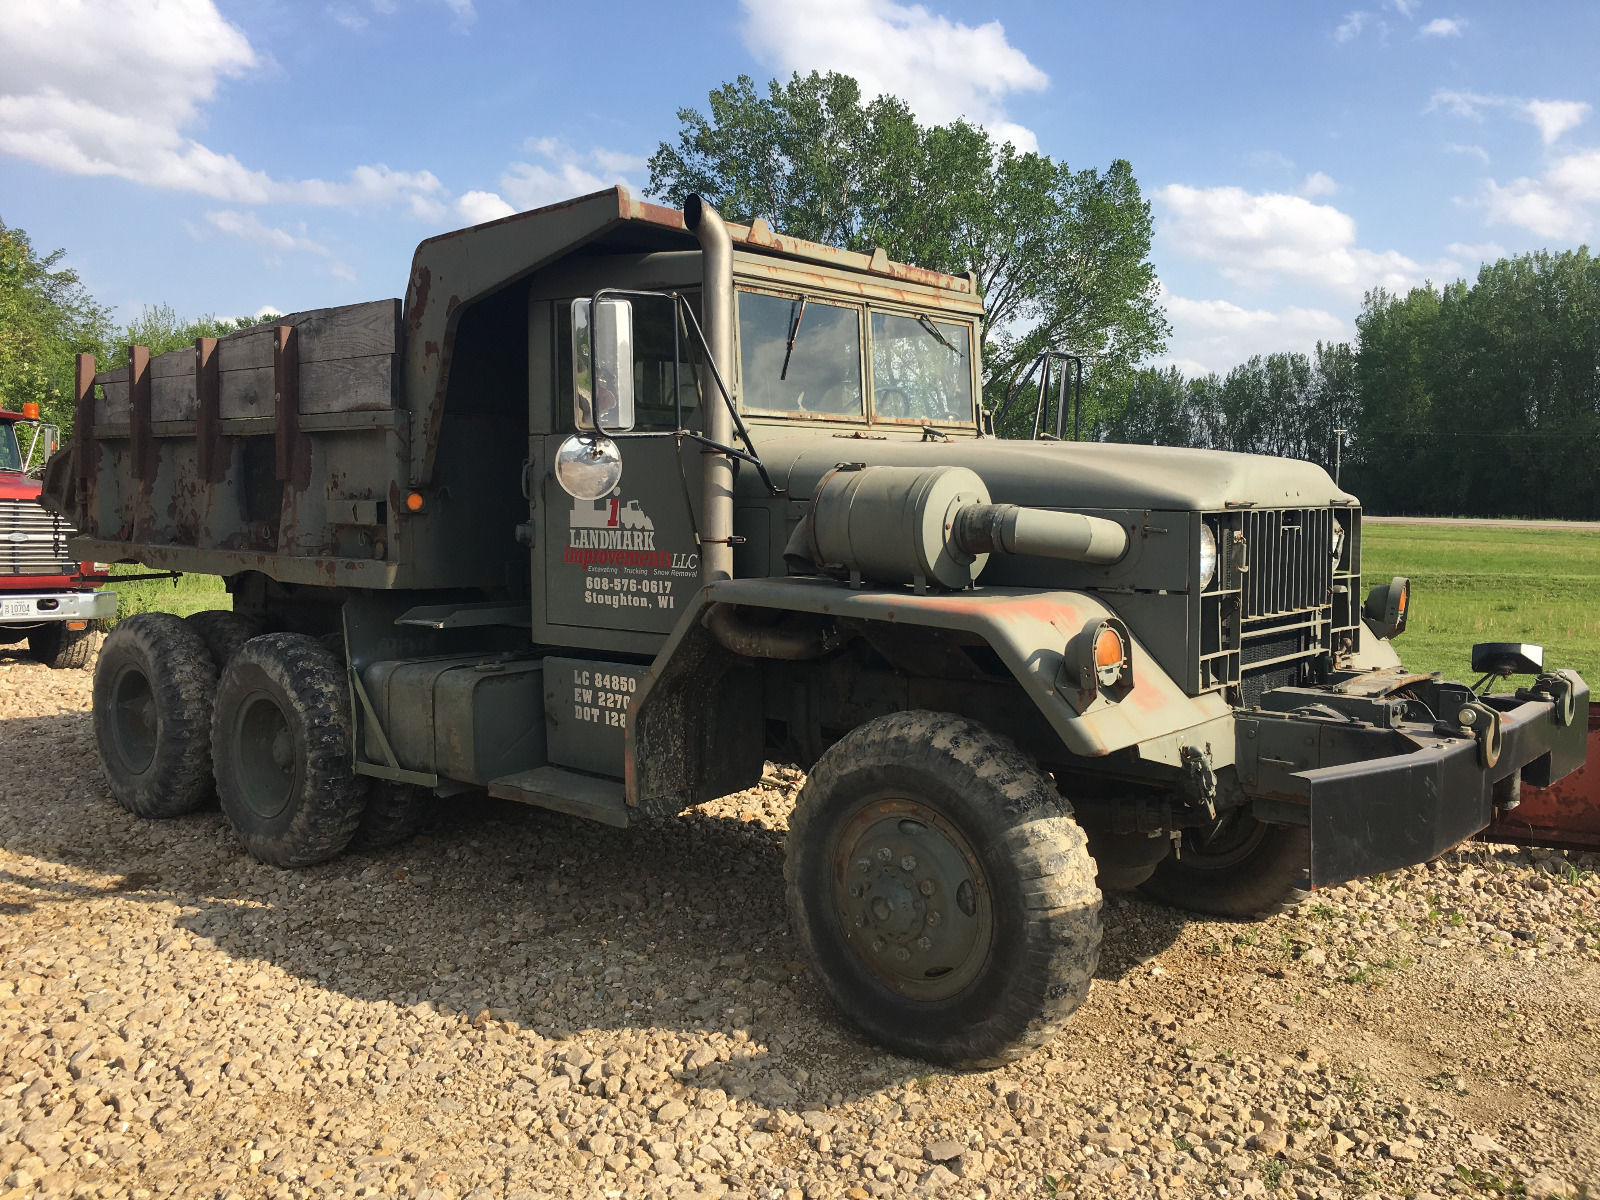 Vehicles For Sale: Dump Truck 1967 Jeep Kaiser Military M51a2 For Sale